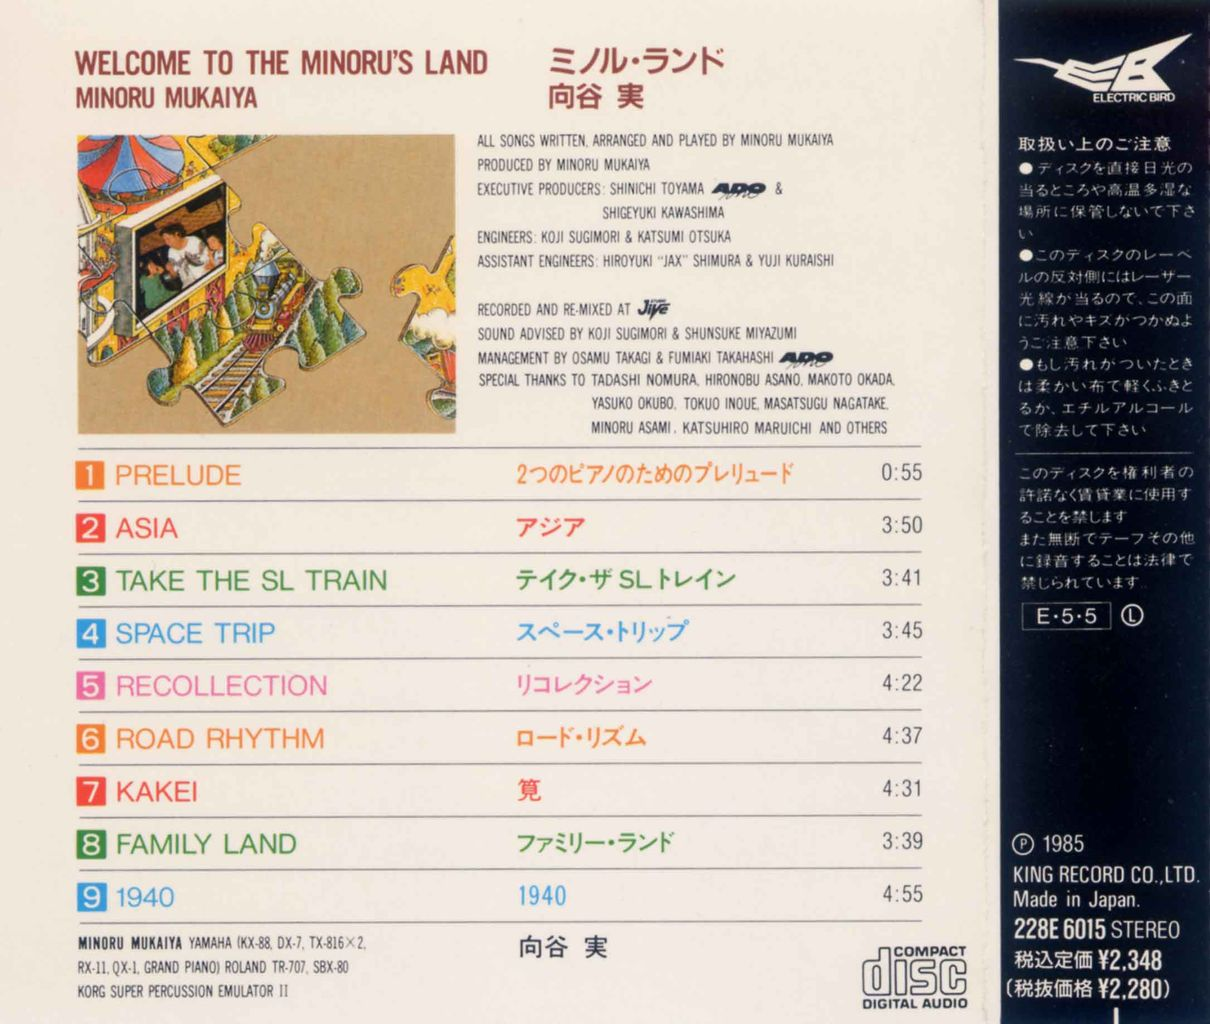 WELCOME TO THE MINORU'S LAND-3